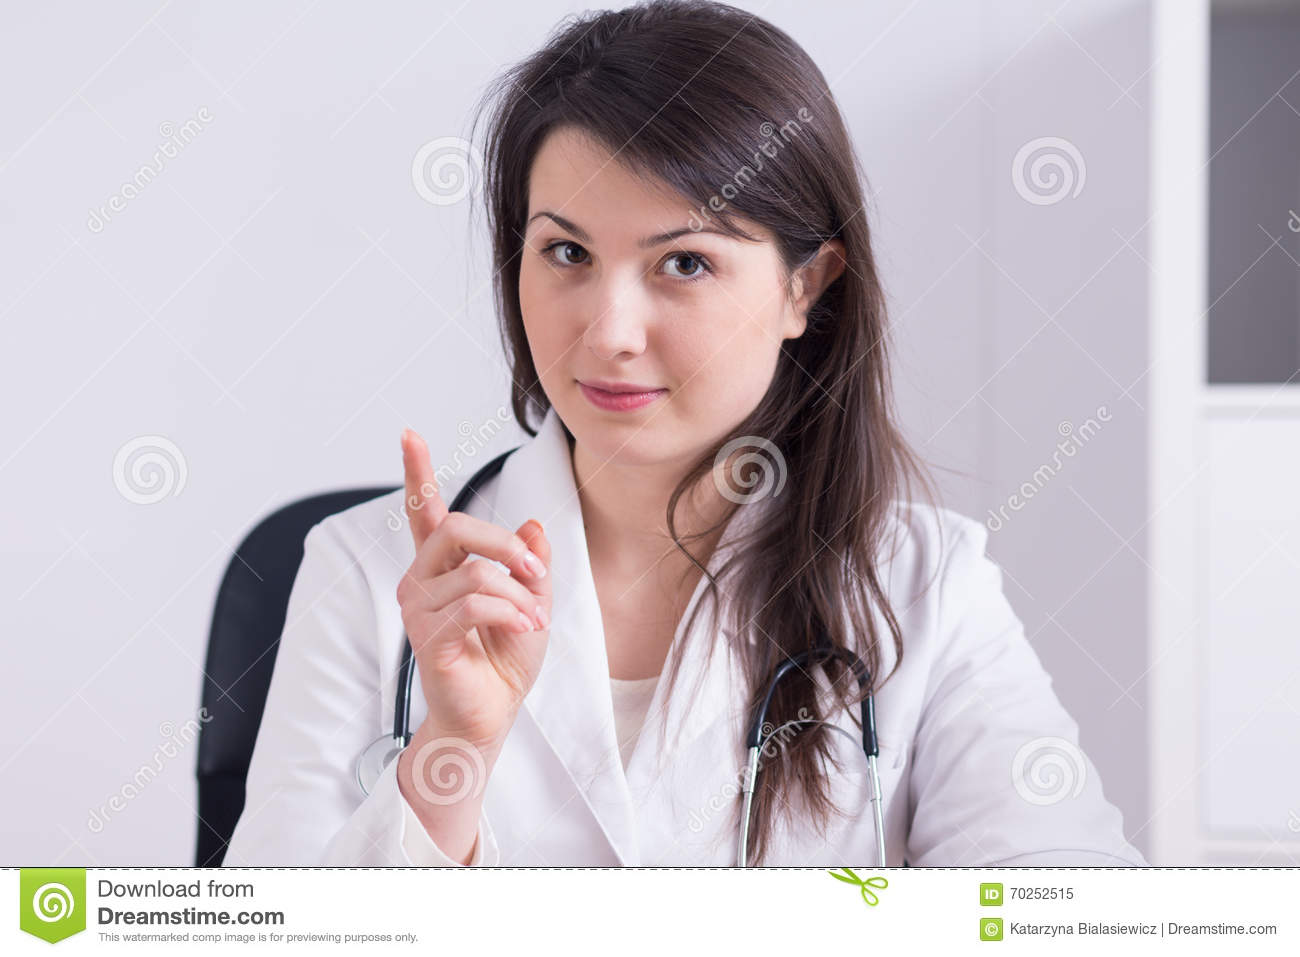 Don T Forget To Take Your Medicine Quotes: Don't Forget To Take Your Medicine Stock Image